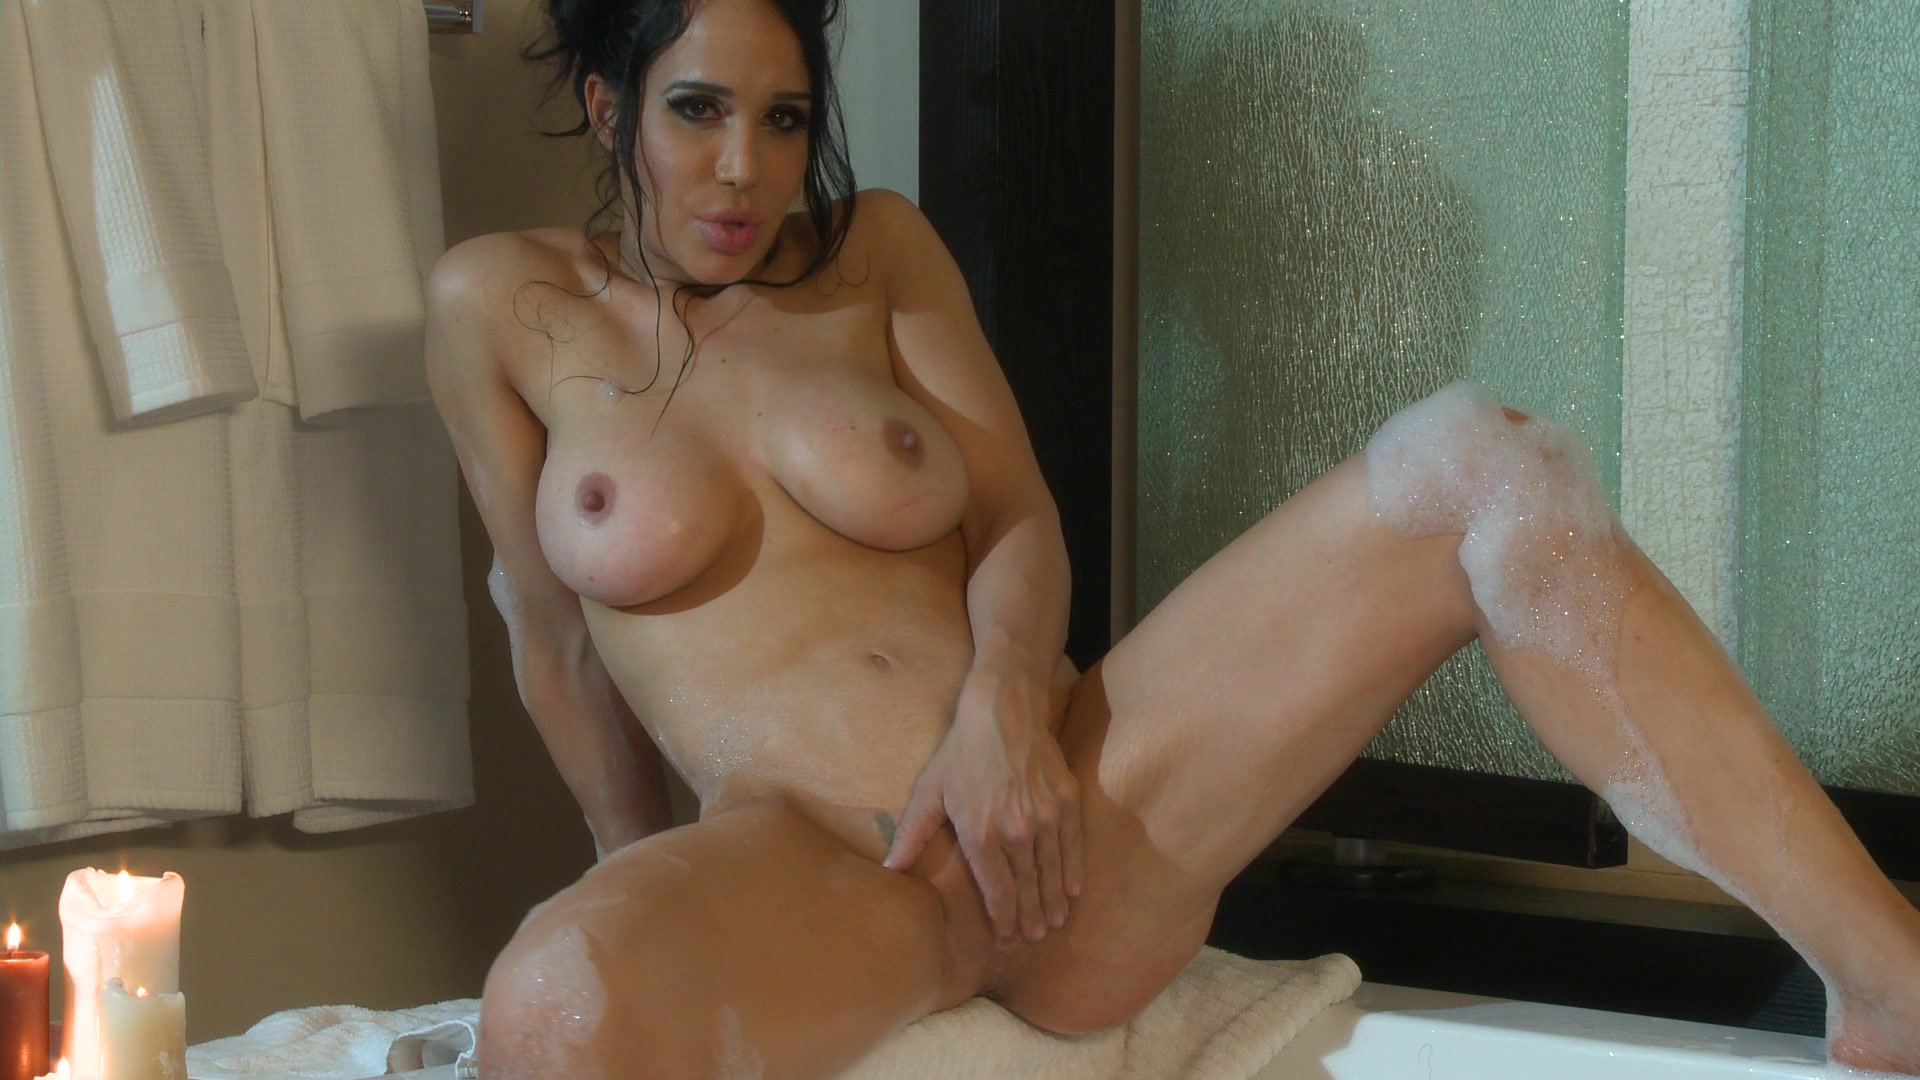 octomom-cum-cartoon-lesbian-porn-video